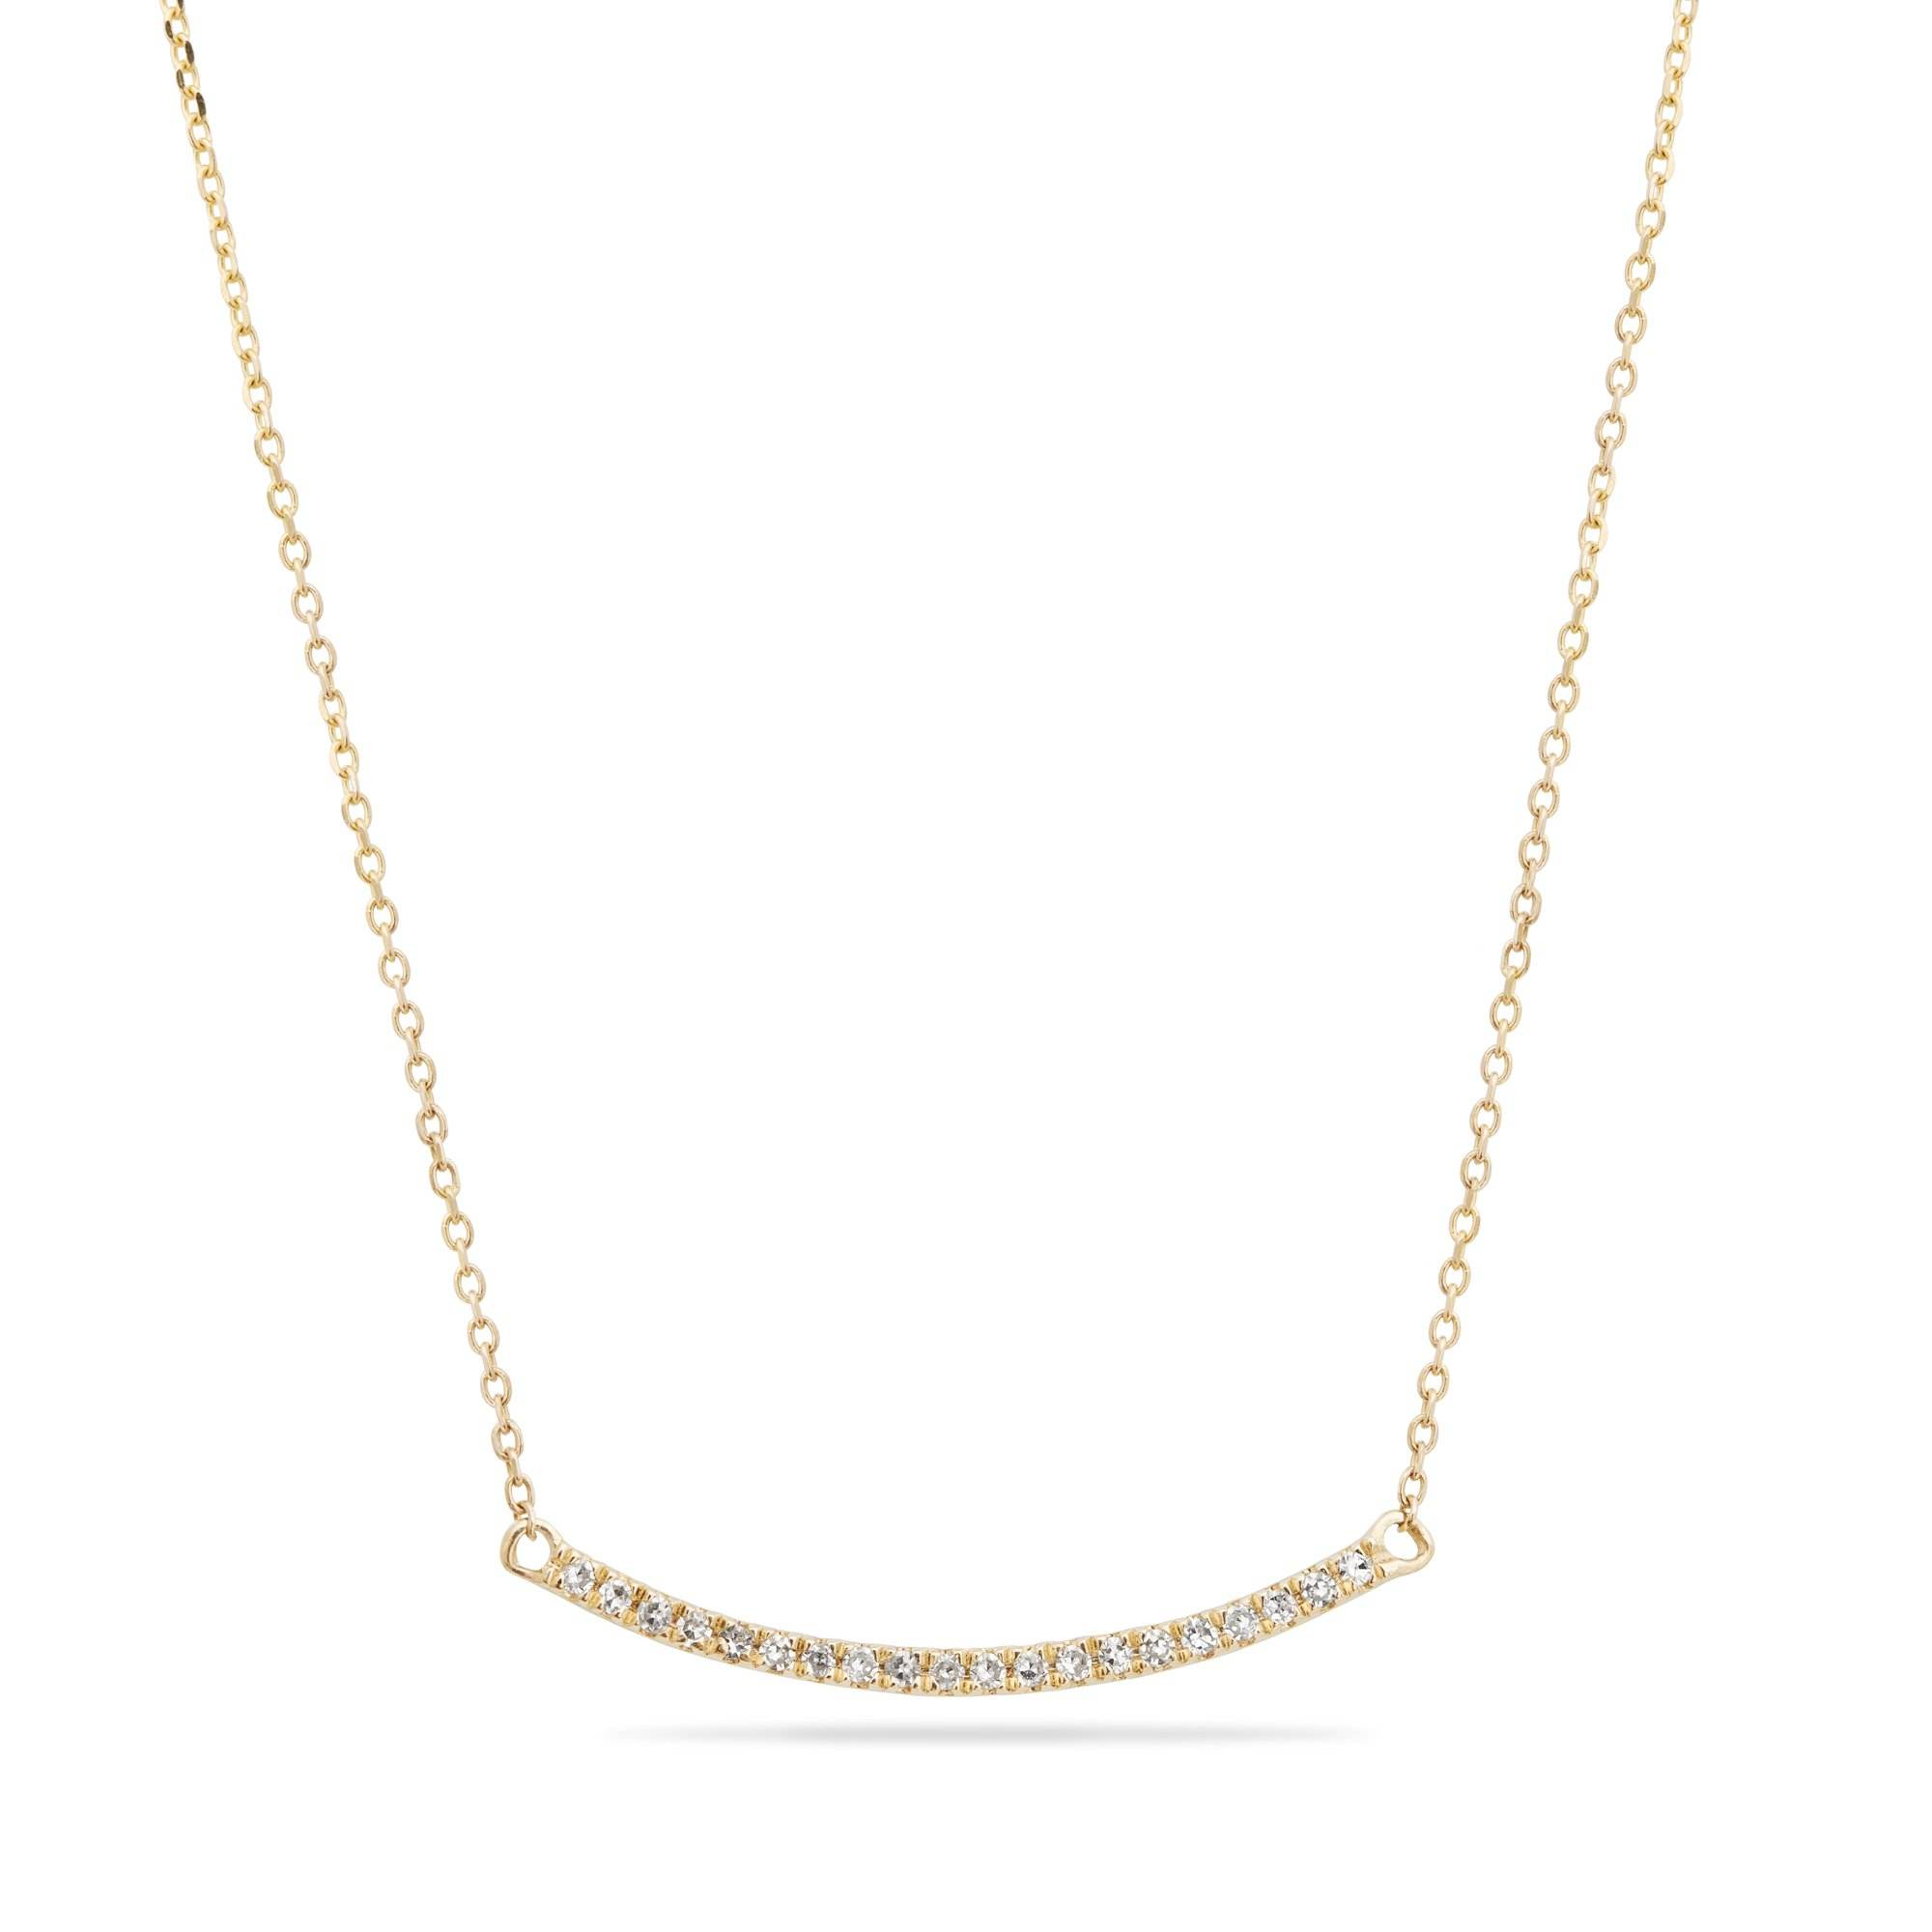 Simple and delicate Young Girls Sisters Women Gold CZ Zircon Pave Diamond Curve Bar Necklace